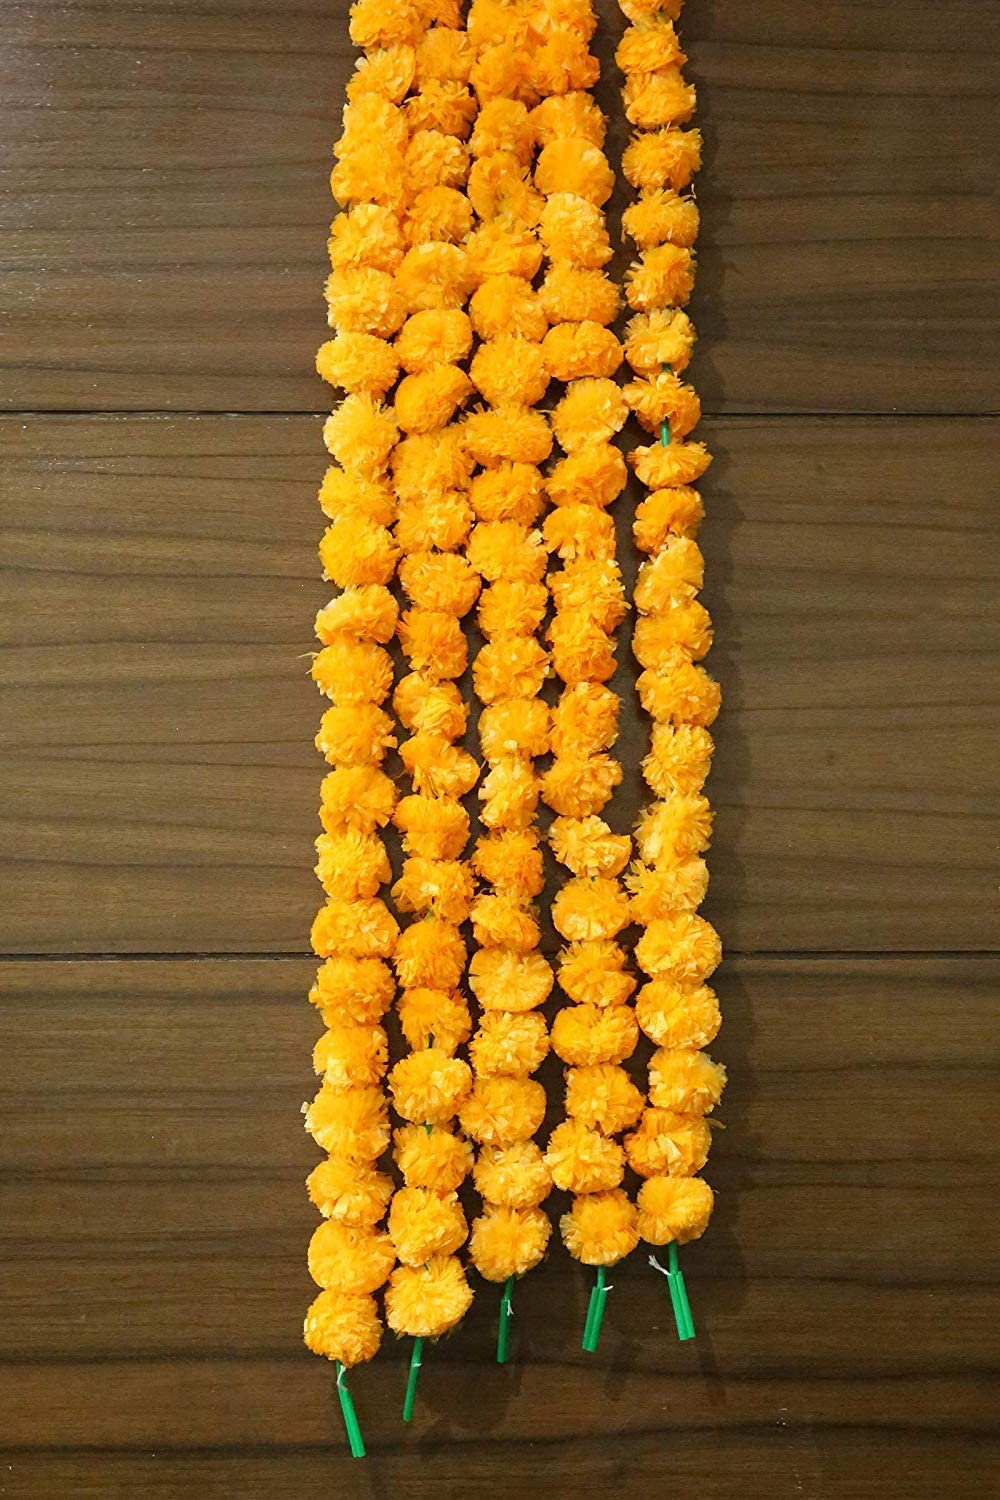 Pack of 5 Artificial Yellow Marigold Flower Garlands 5 ft Long- for use in Parties, Celebrations, Indian Weddings, Indian Themed Event, Decorations, House Warming, Photo Prop,Diwali,Ganesha Fest